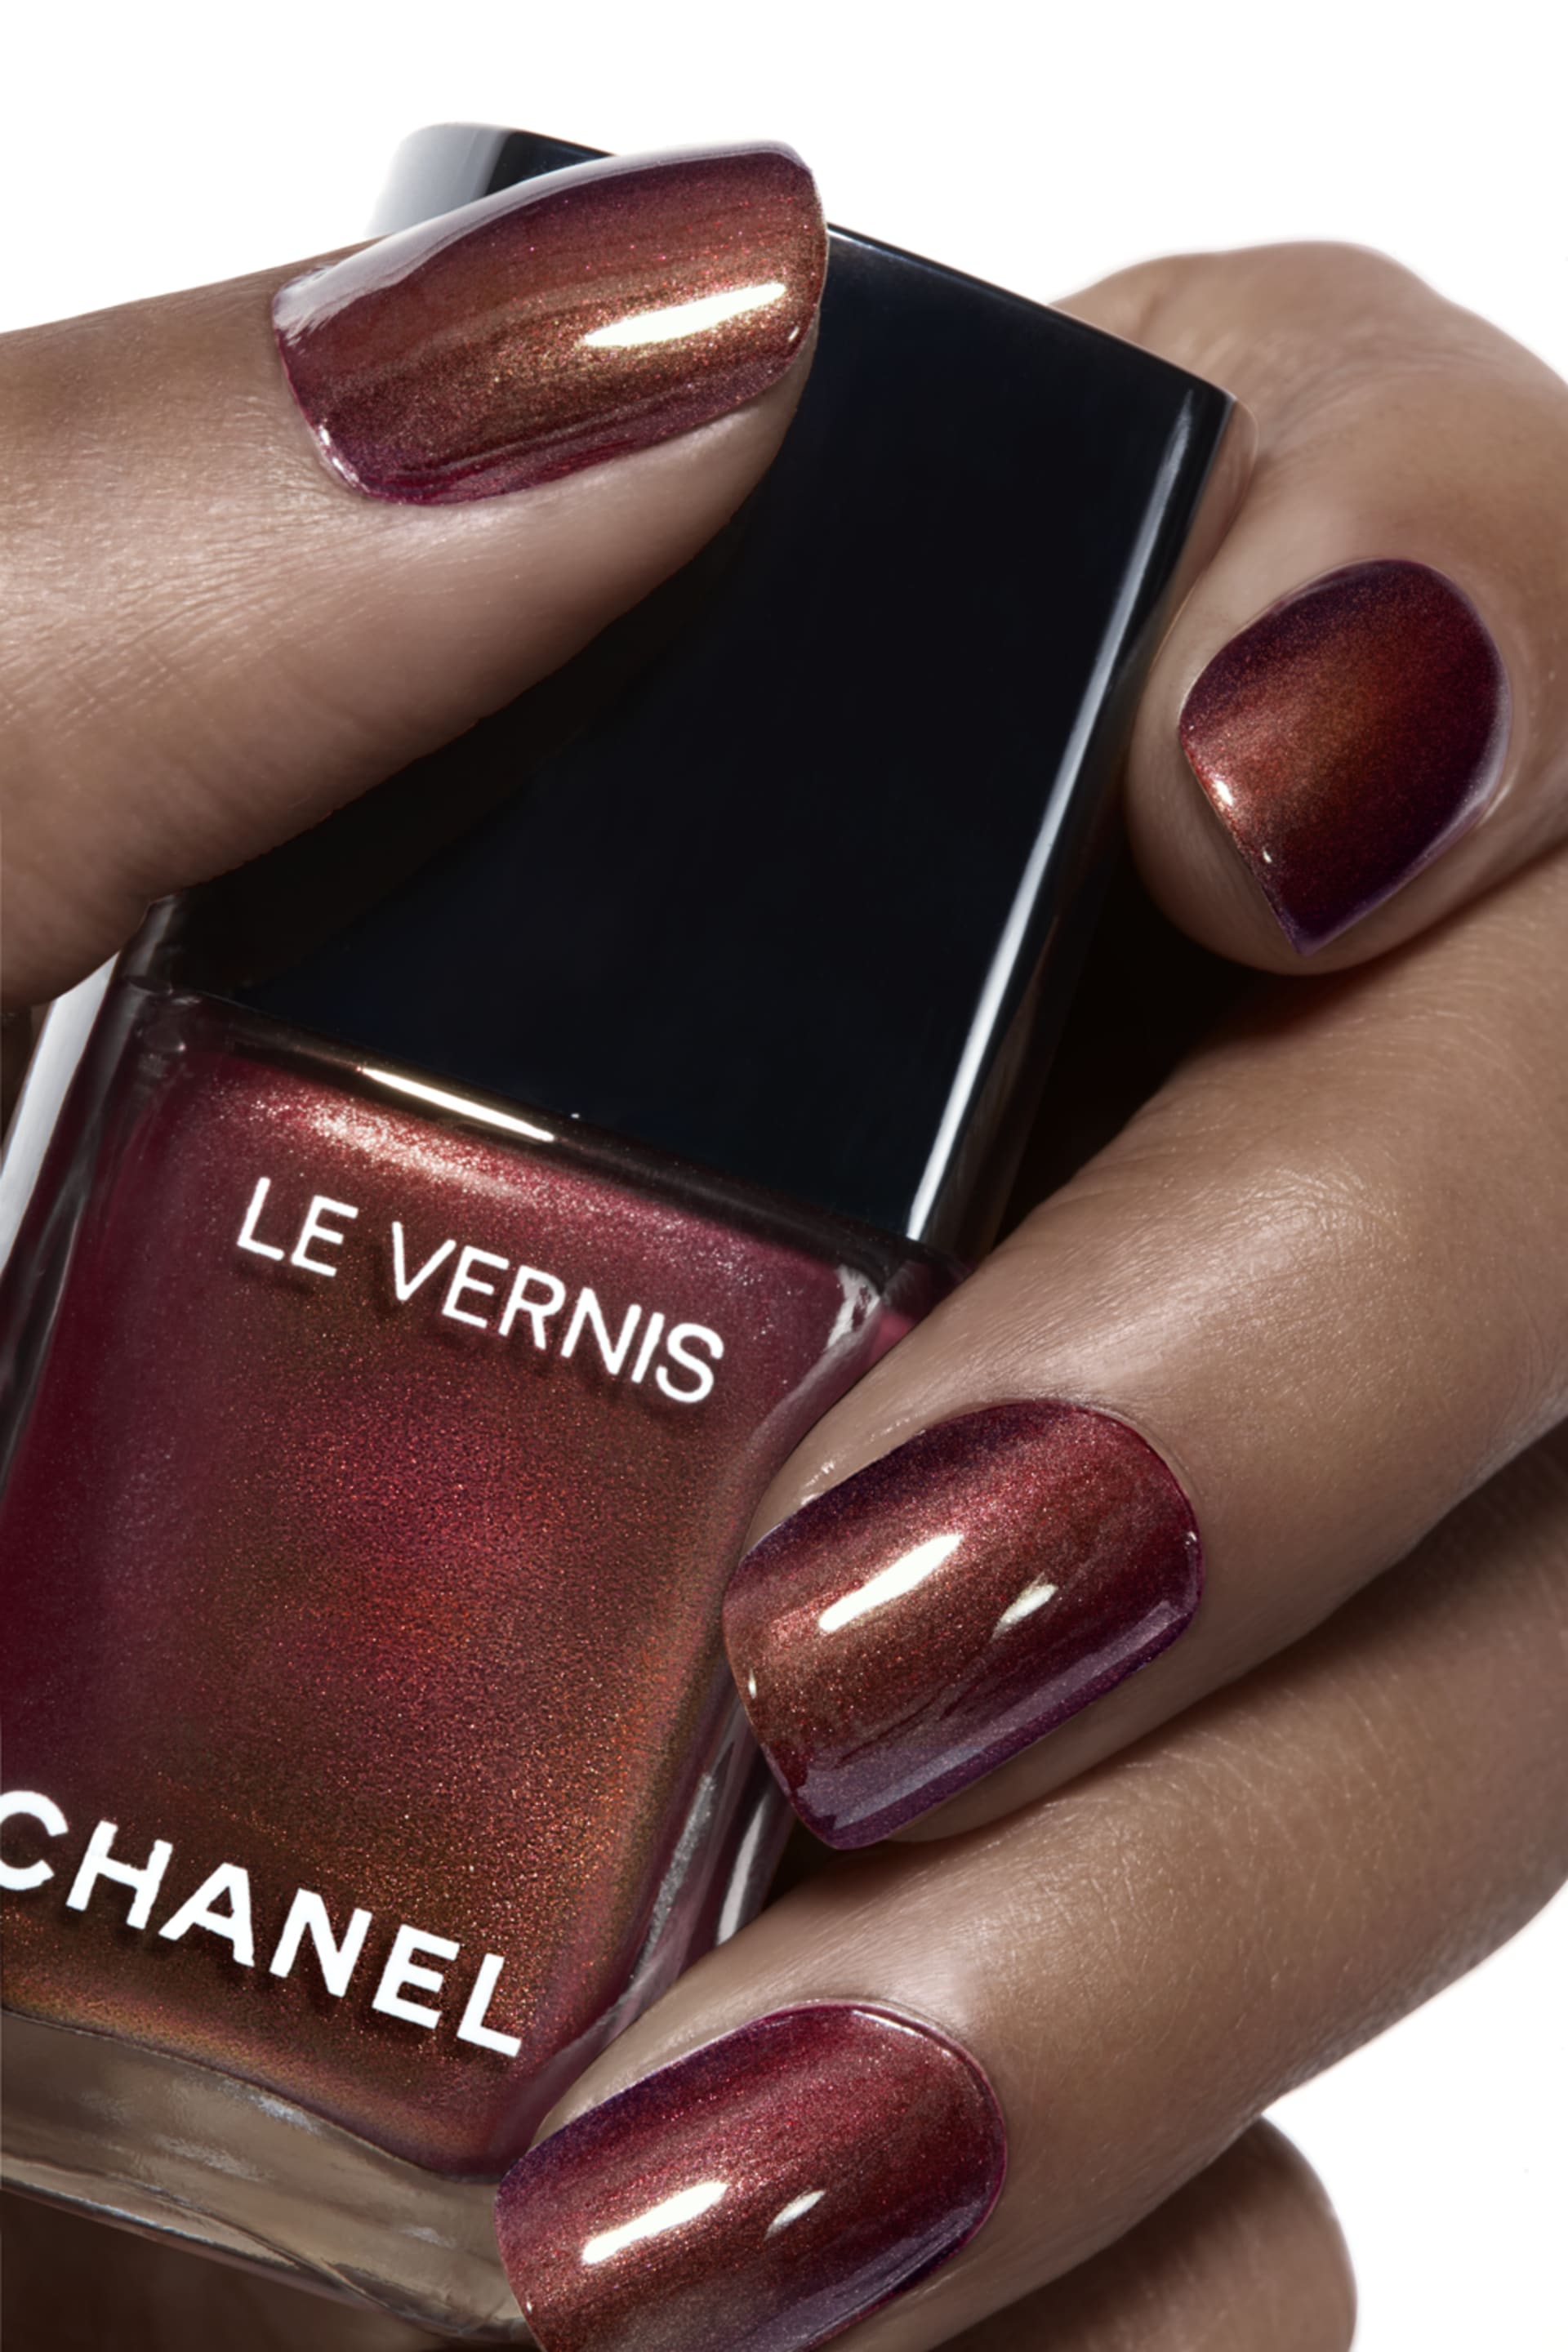 Application makeup visual 1 - LE VERNIS 917 - OPULENCE